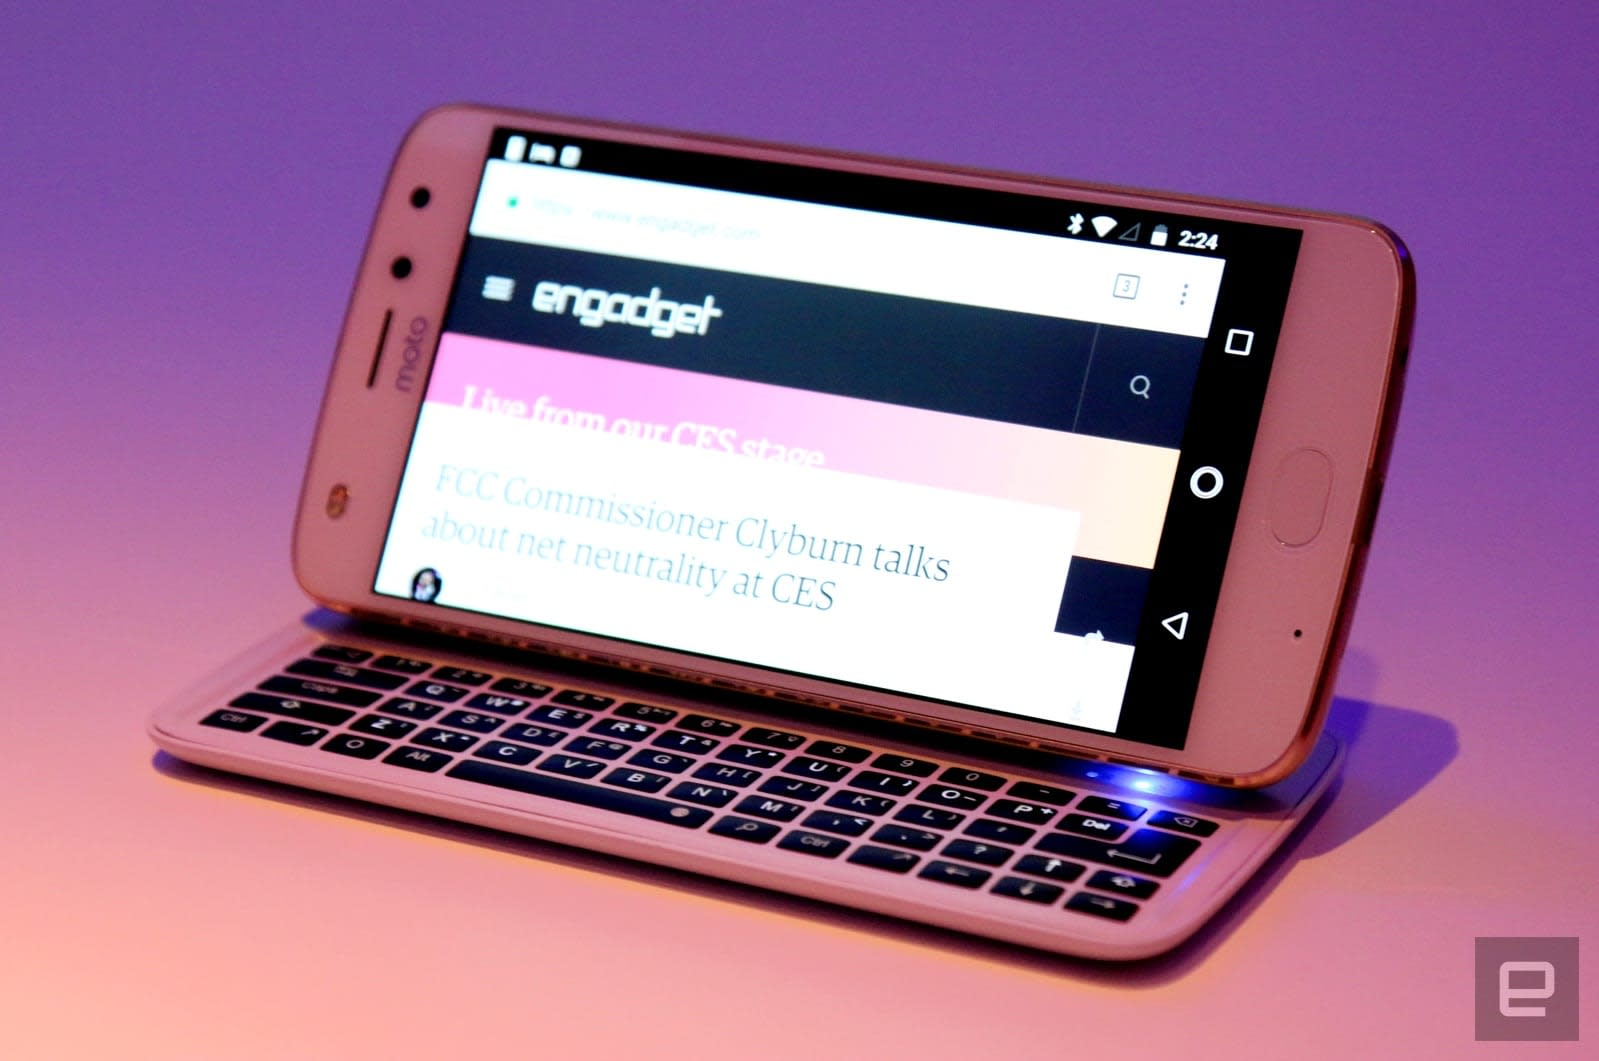 The Moto Z's keyboard mod feels like an imperfect blast from the past